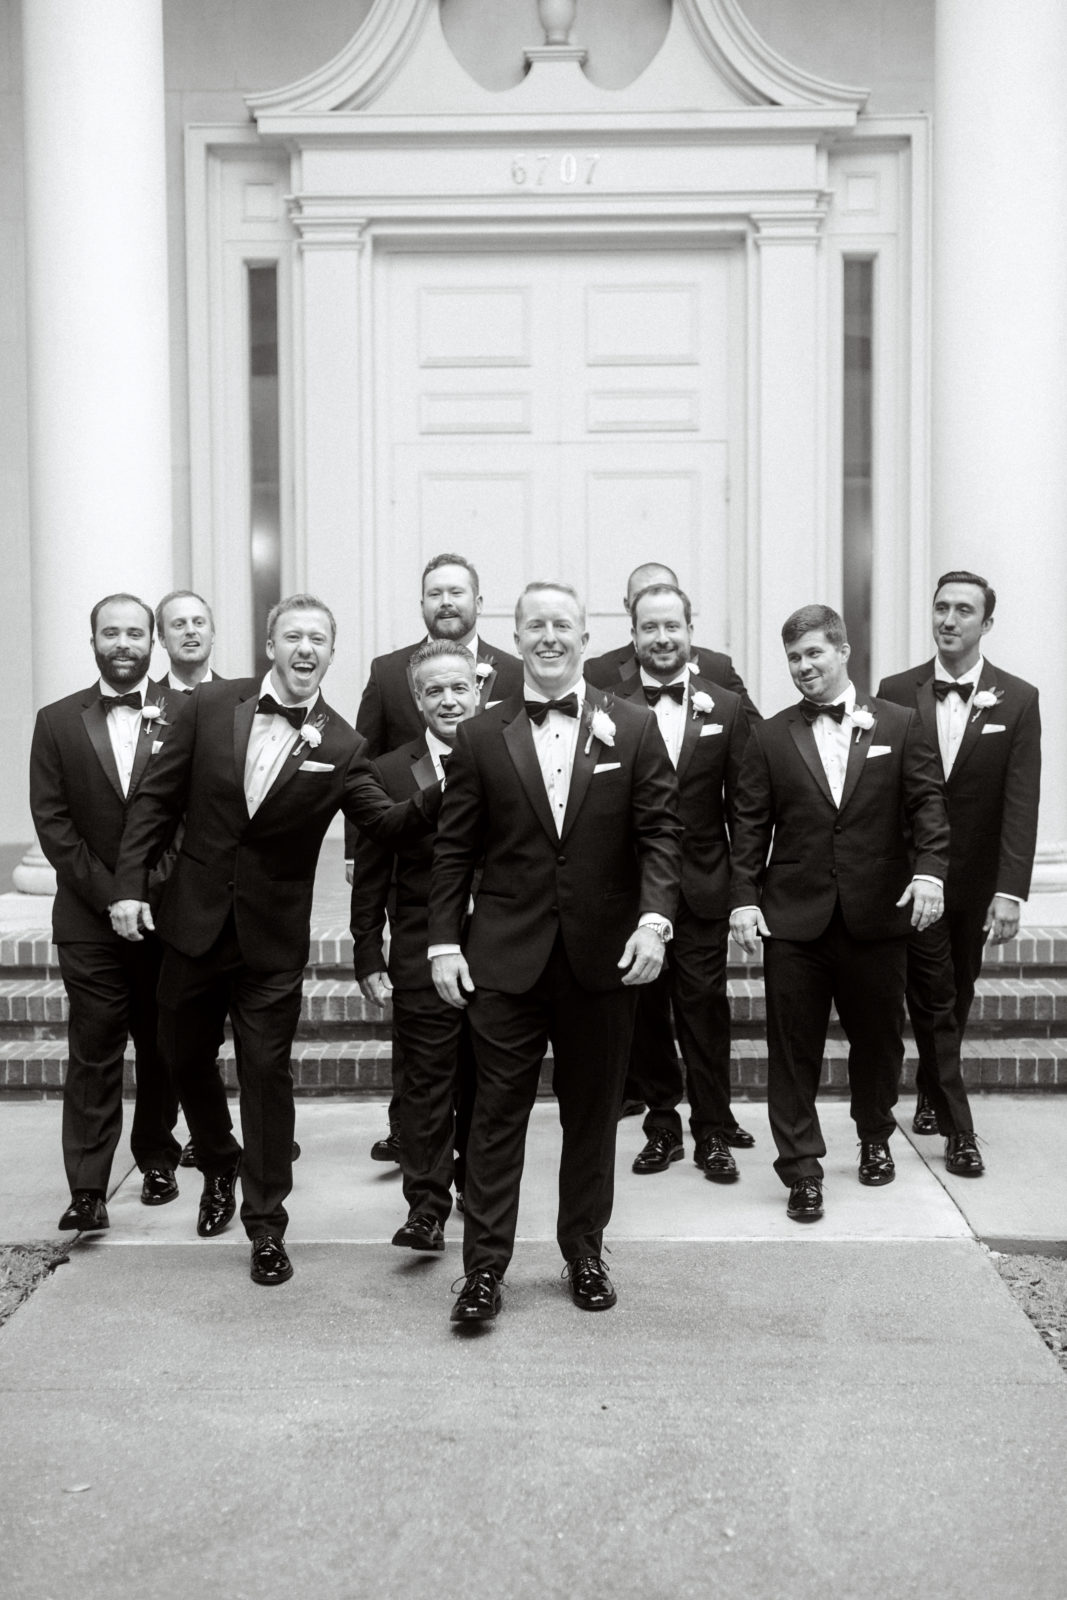 Black and white portrait of groom and groomsmen